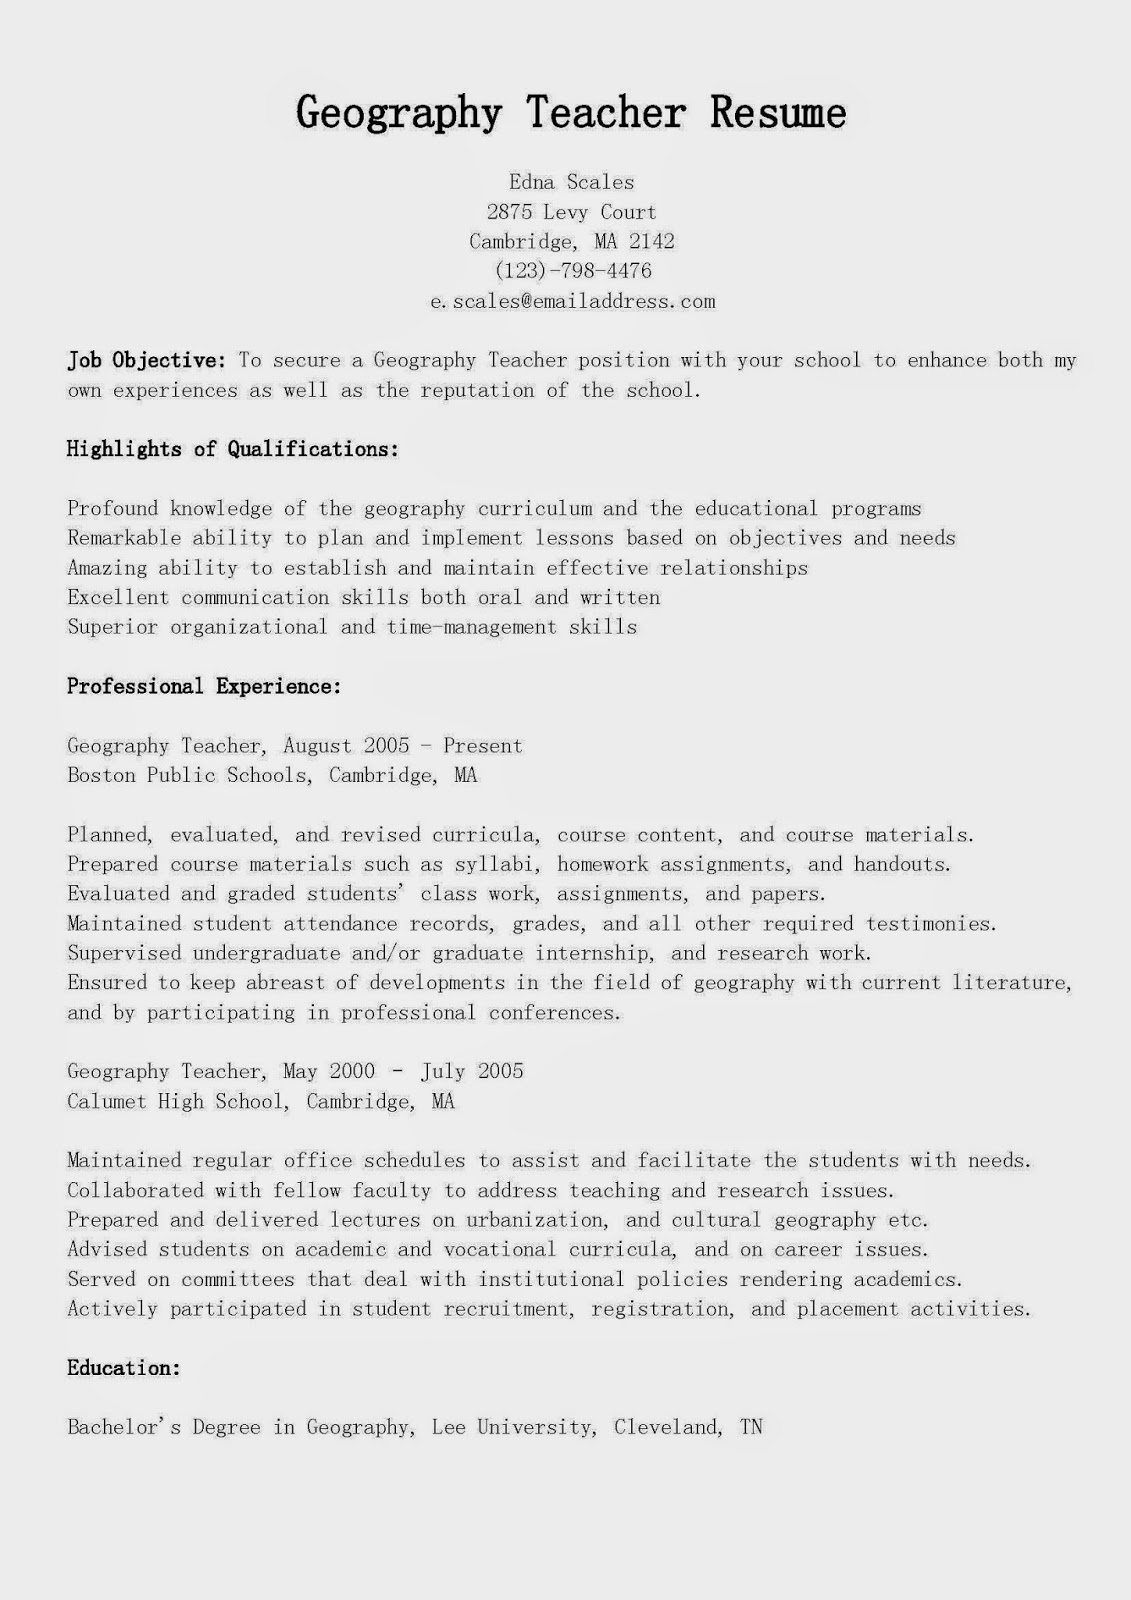 Resume Samples Geography Teacher Resume Sample